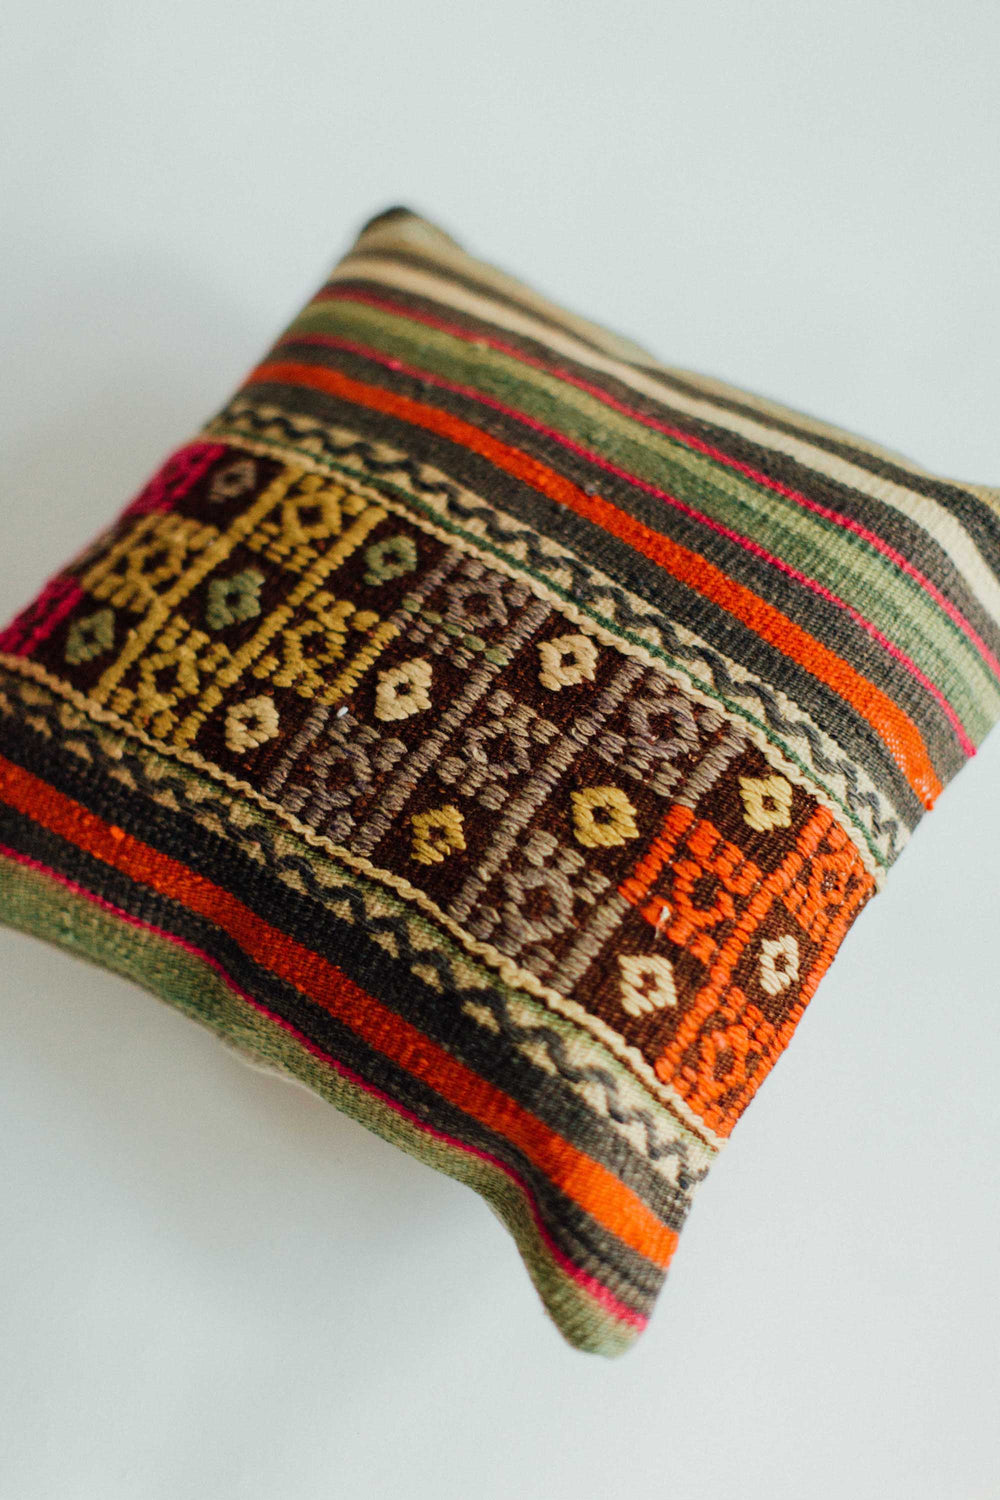 Vintage Turkish Pillow no. 004